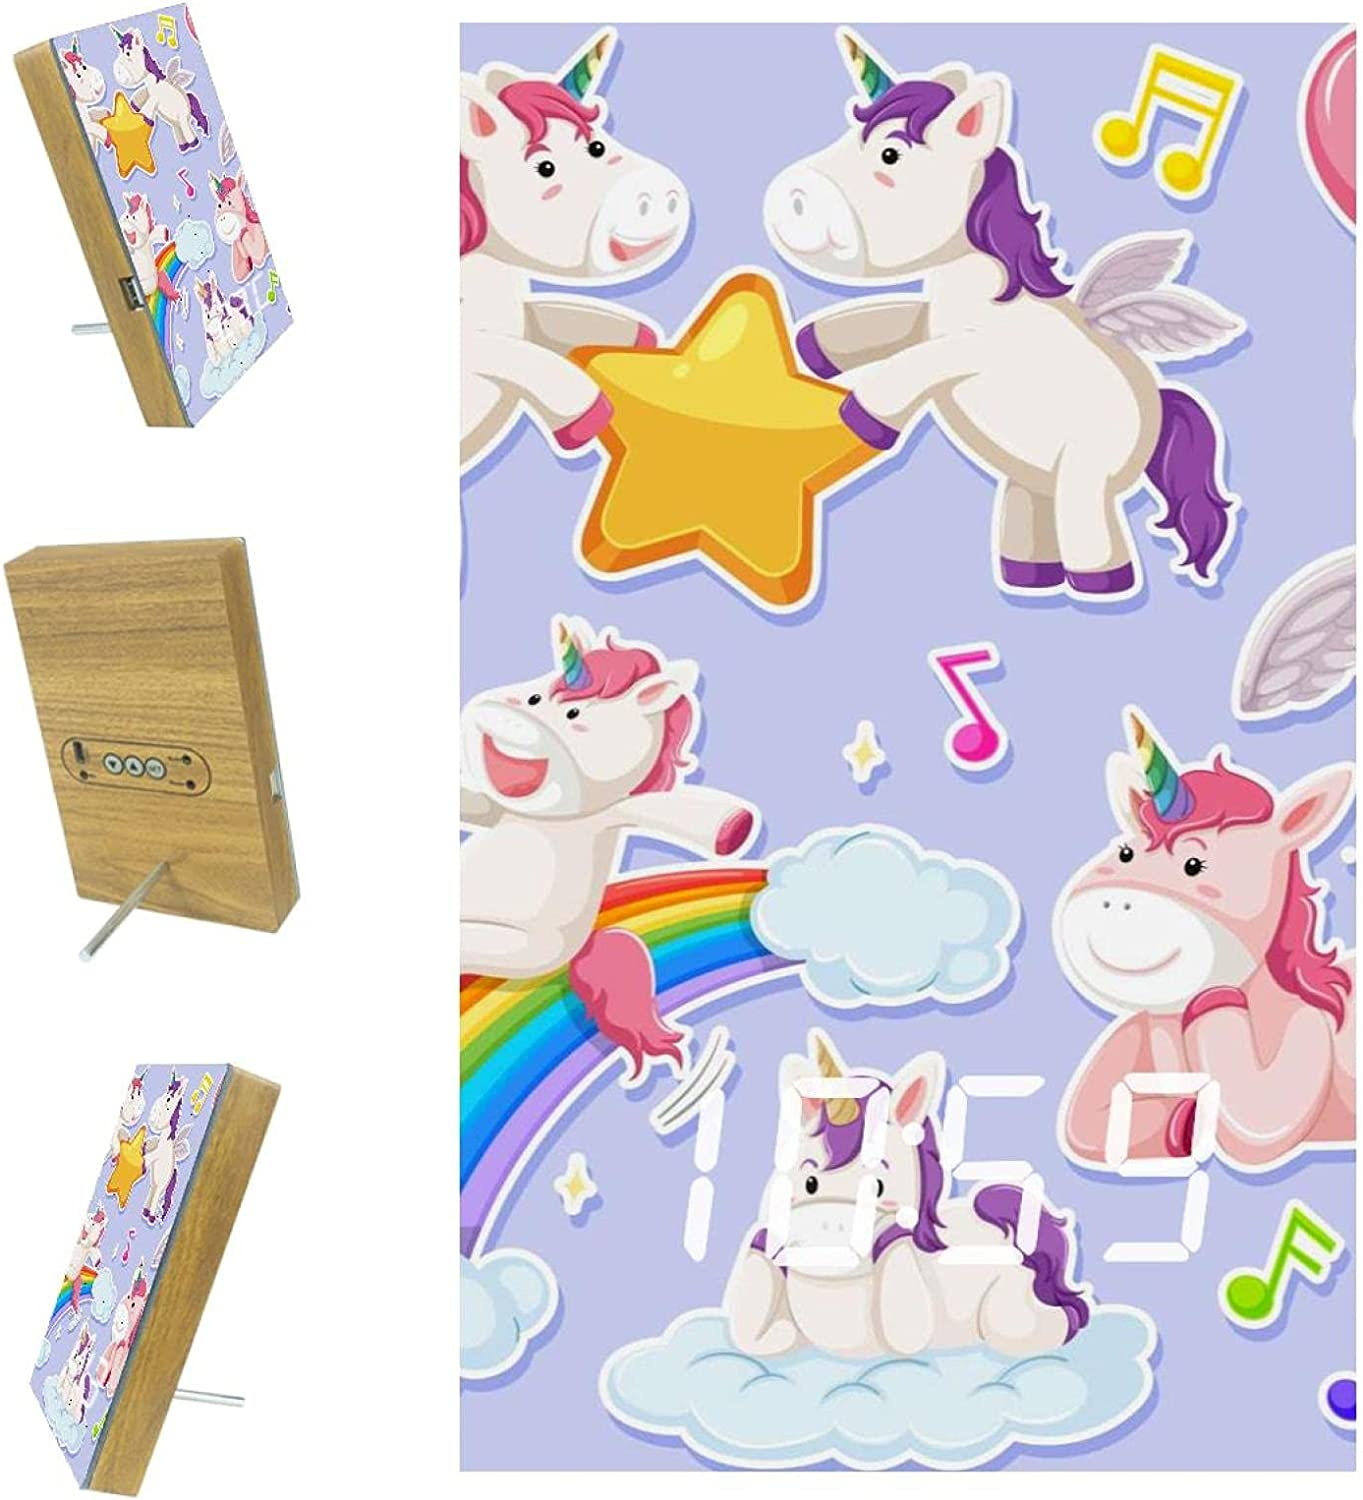 Deluxe imobaby Alarm Clock Boston Mall Unicorn Character Digital USB with LED